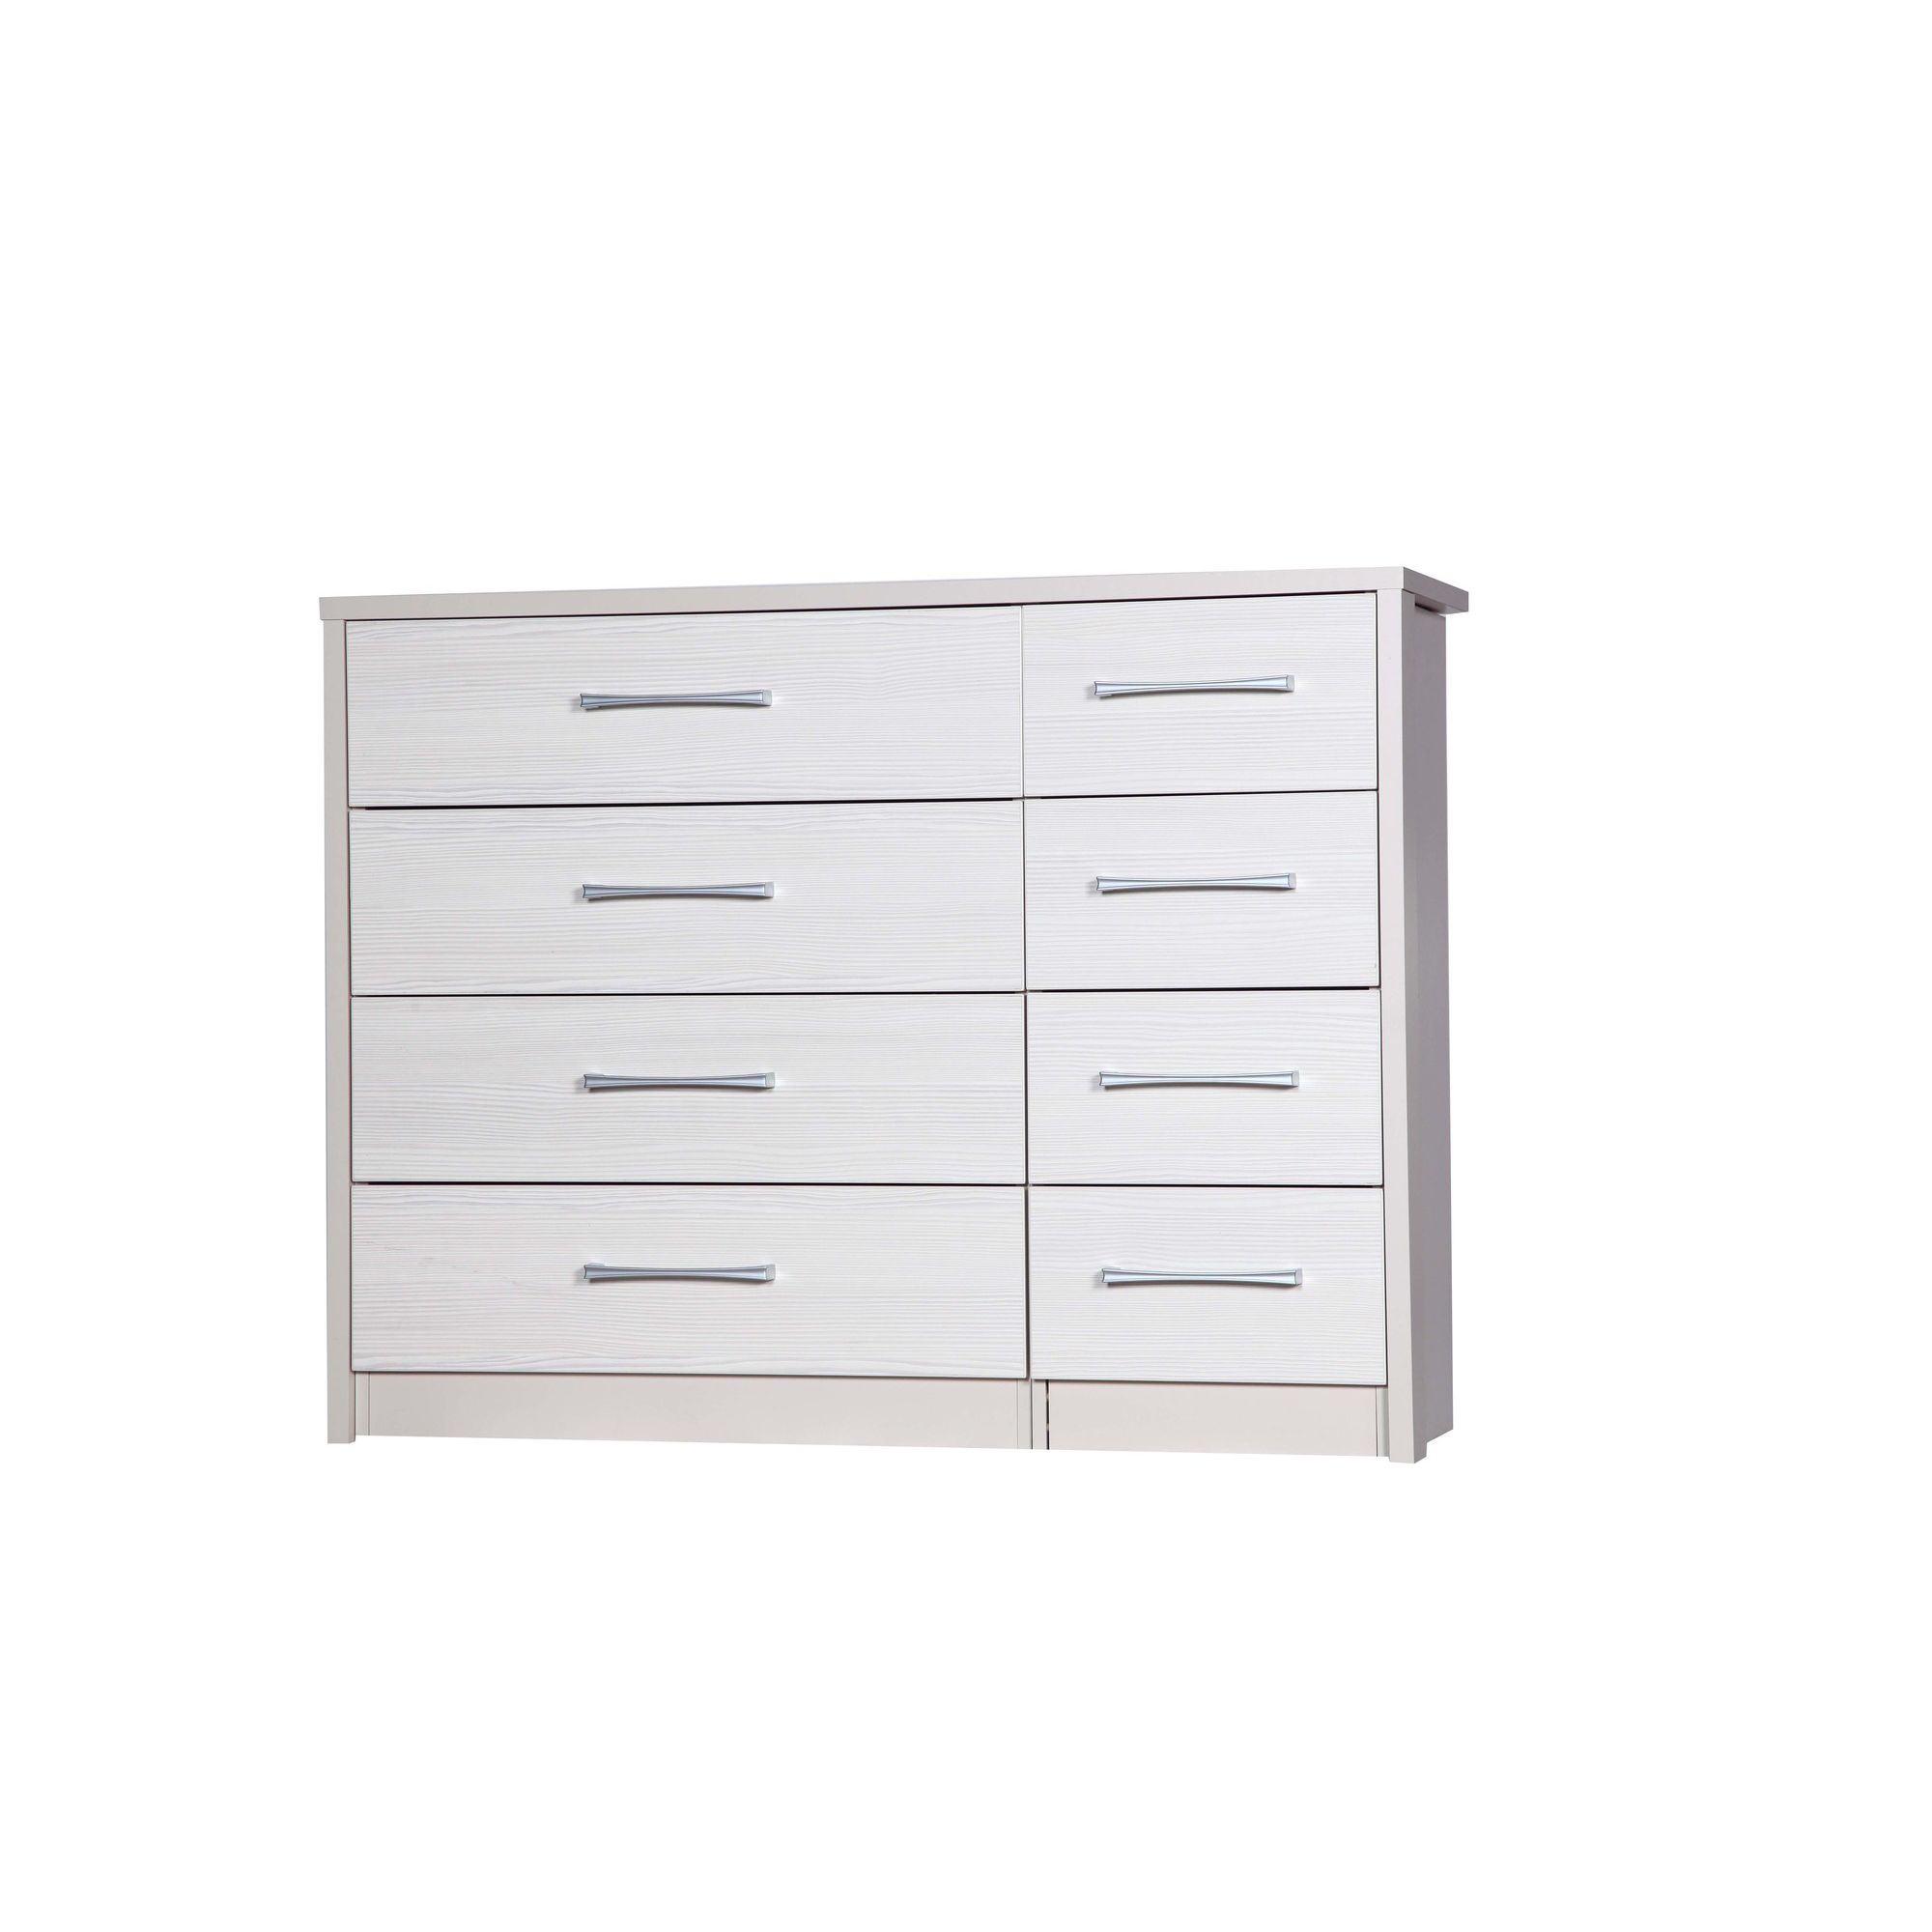 Alto Furniture Avola 8 Drawer Double Chest - Cream Carcass With White Avola at Tescos Direct